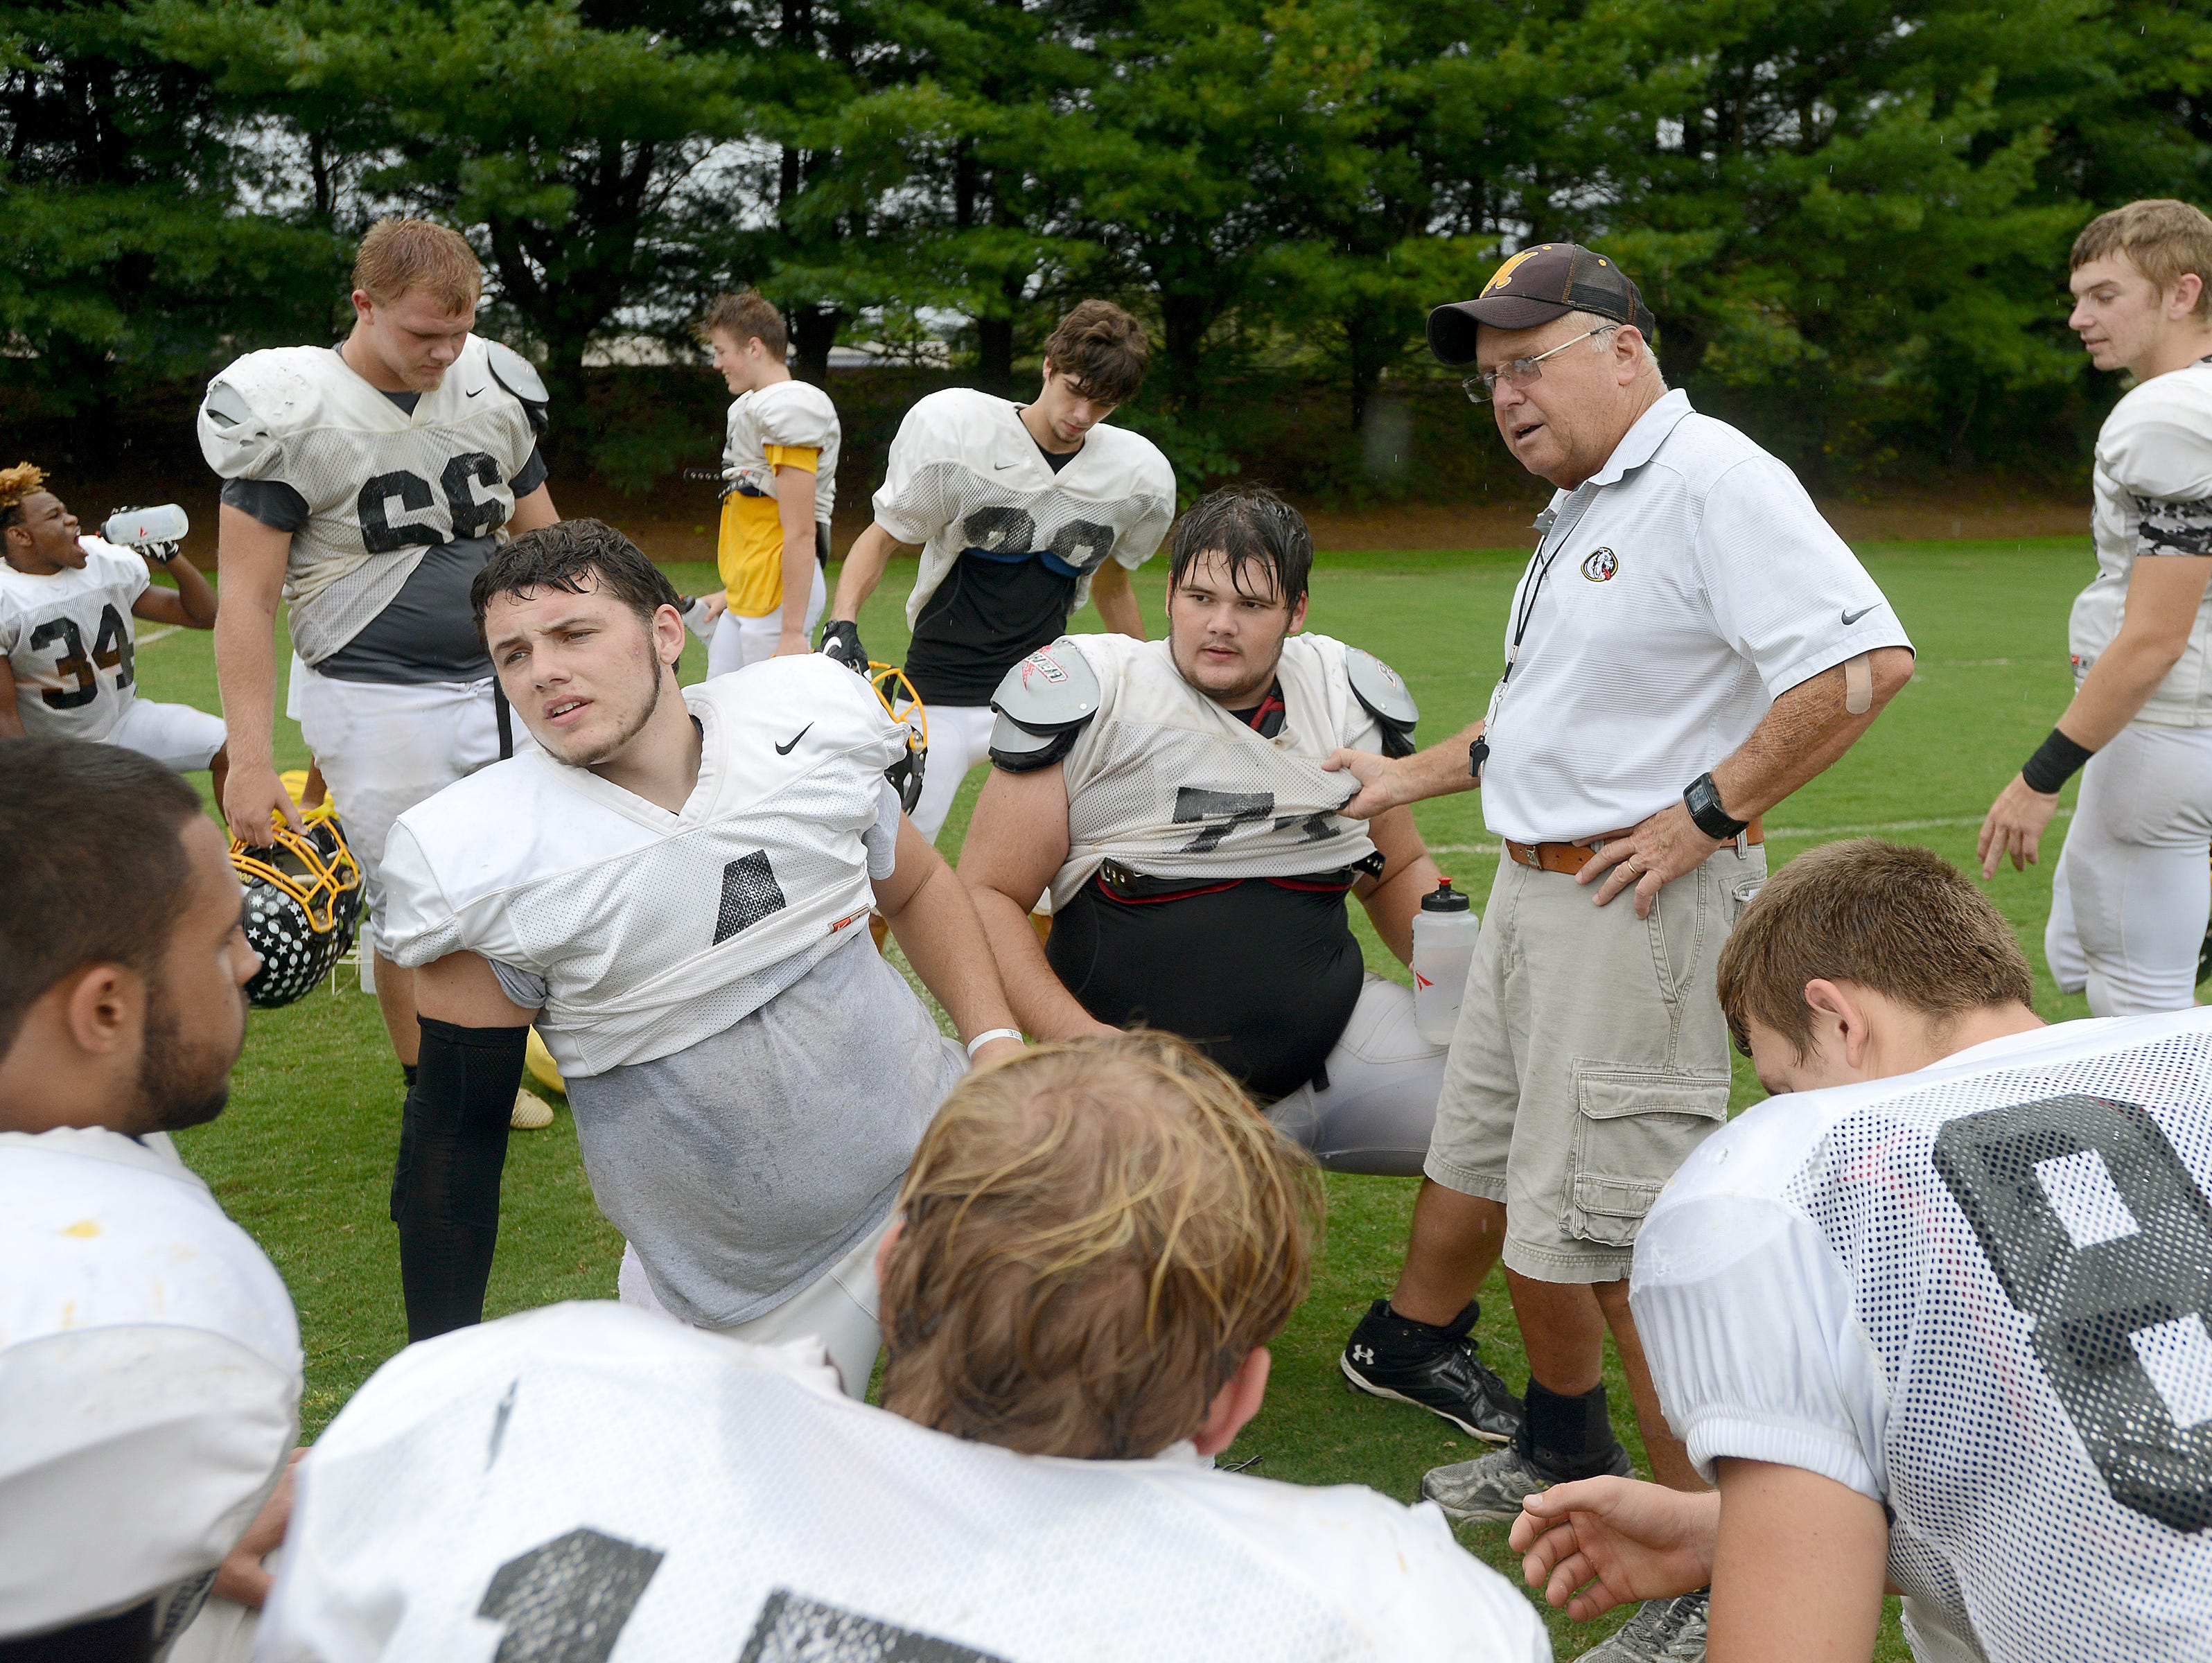 Murphy's David Gentry is the head coach for this year's North Carolina Shrine Bowl team.